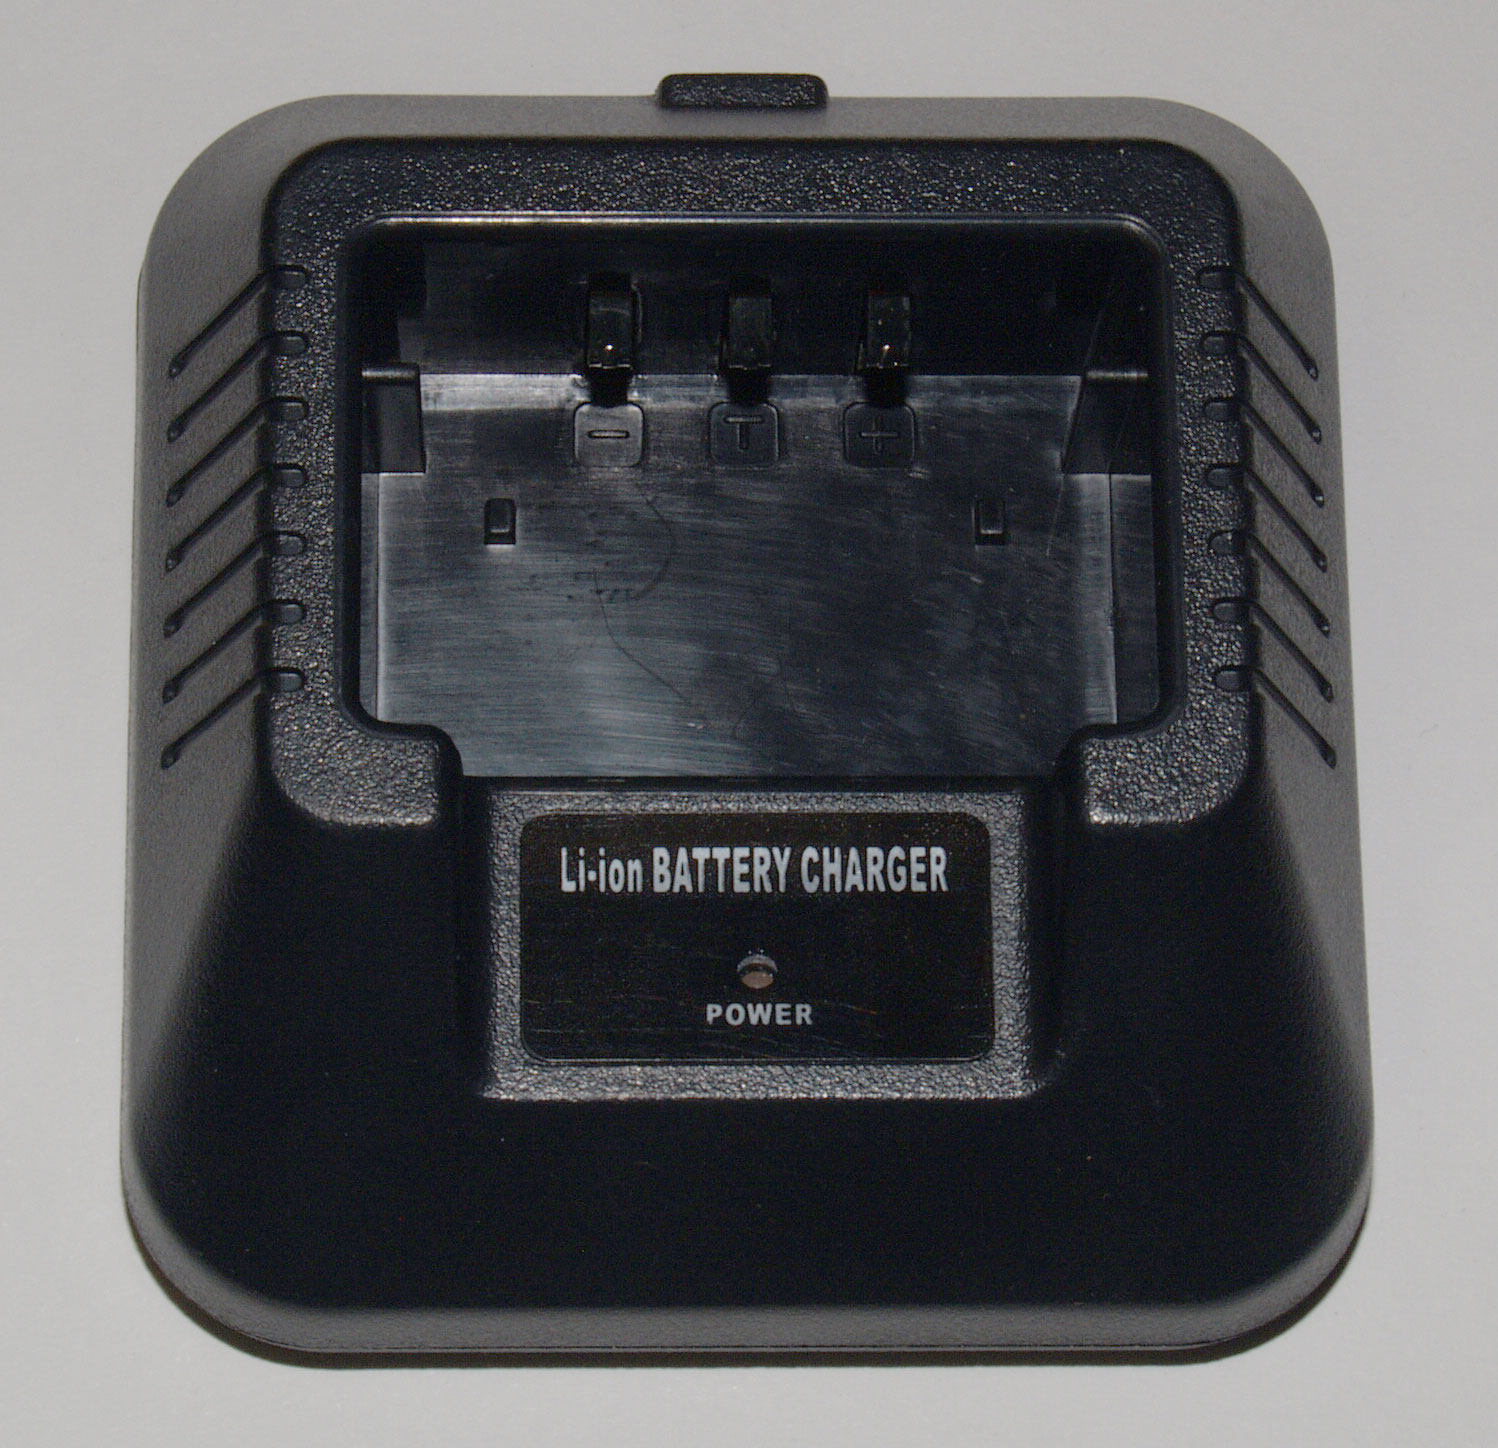 Drop-in Charging Base for Baofeng UV-5R handheld transceivers